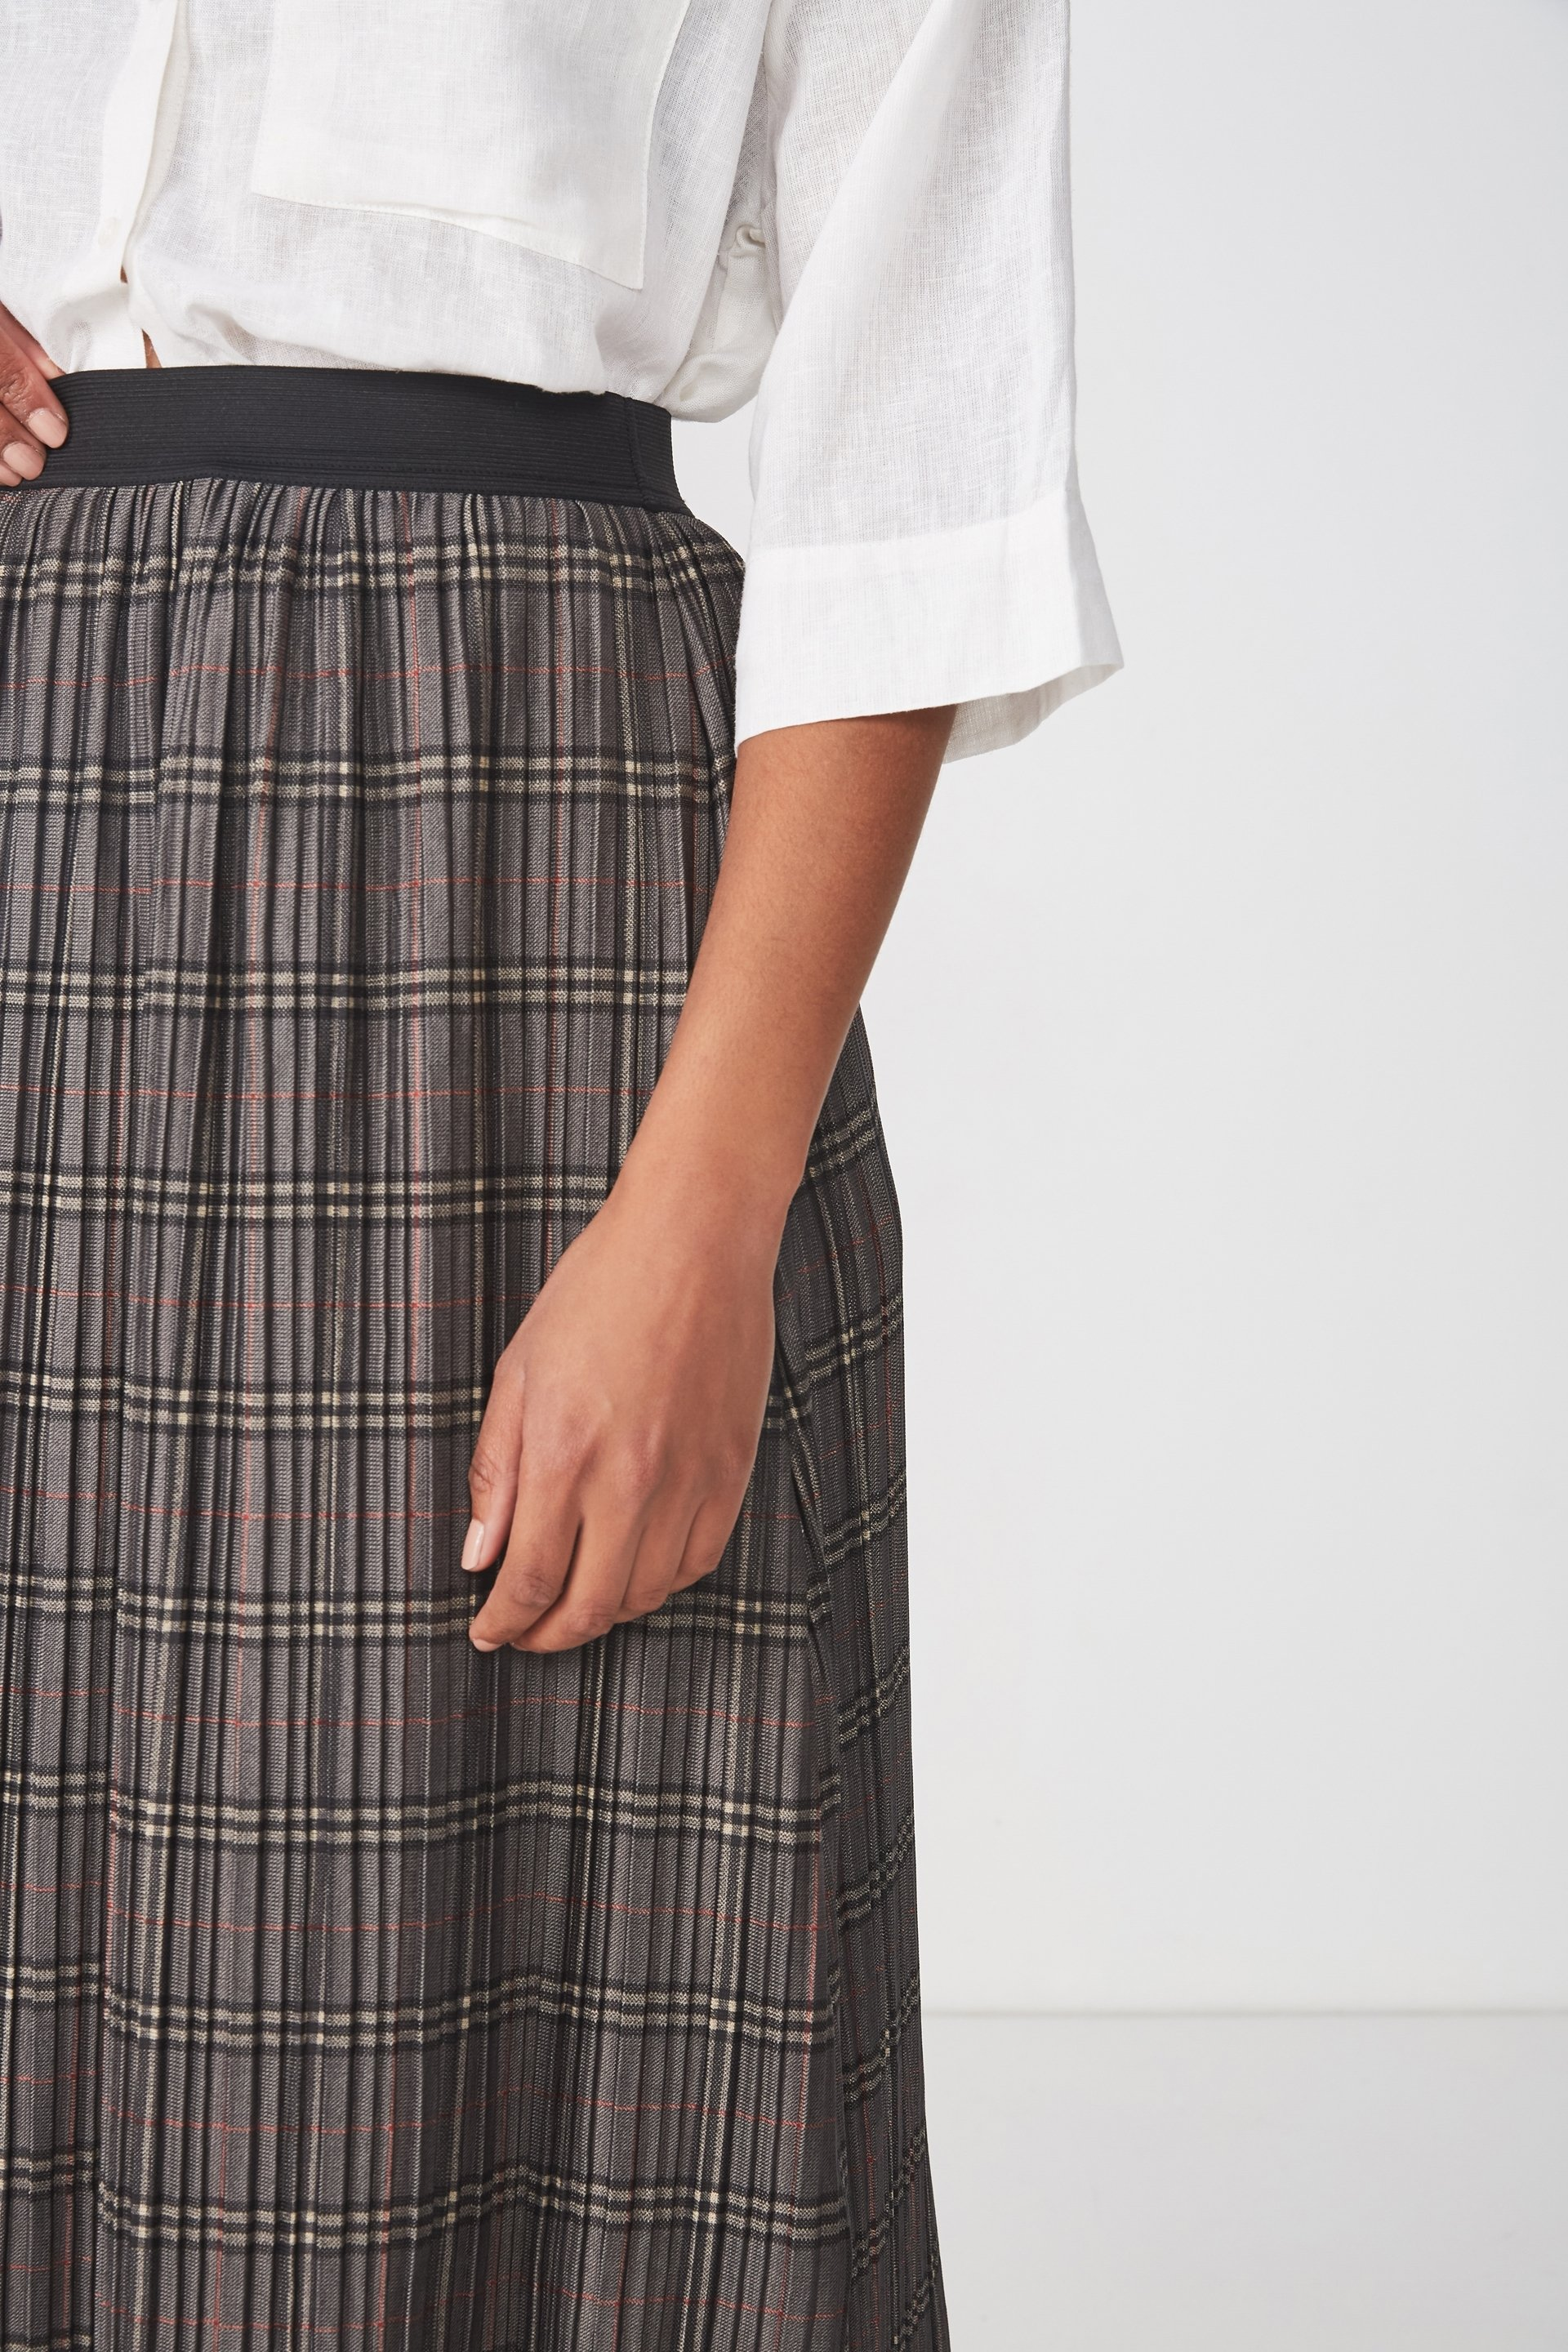 6f7caea92 ... Woven Dolly Check Pleated Midi Skirt, GREY CHECK ...